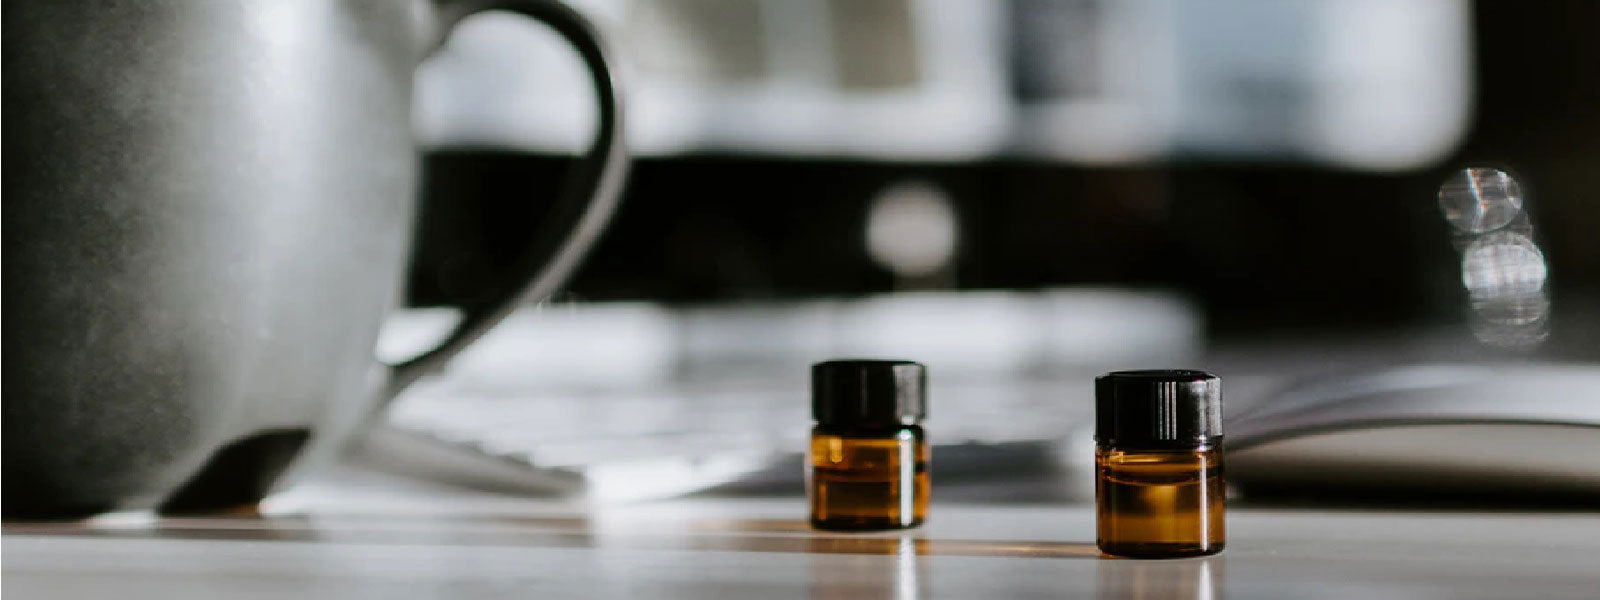 2 Bottles of essential oil on the table